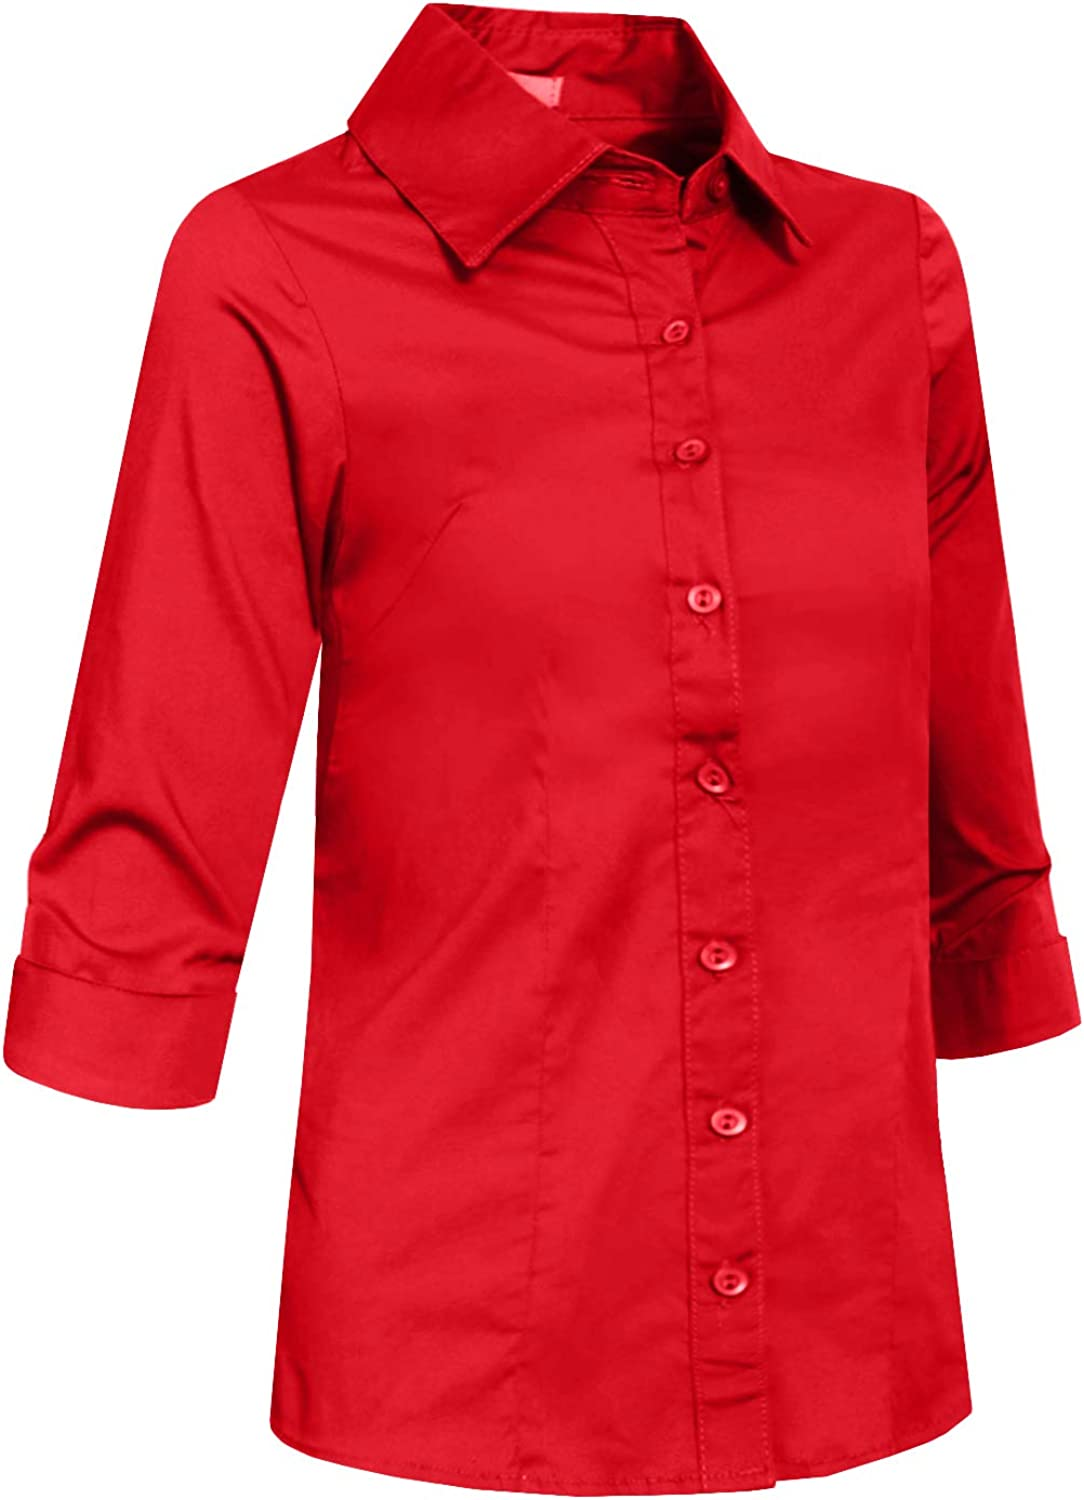 J. LOVNY Girl's Basic Casual Long Sleeve Roll Up Button Down Blouse Shirts: Clothing